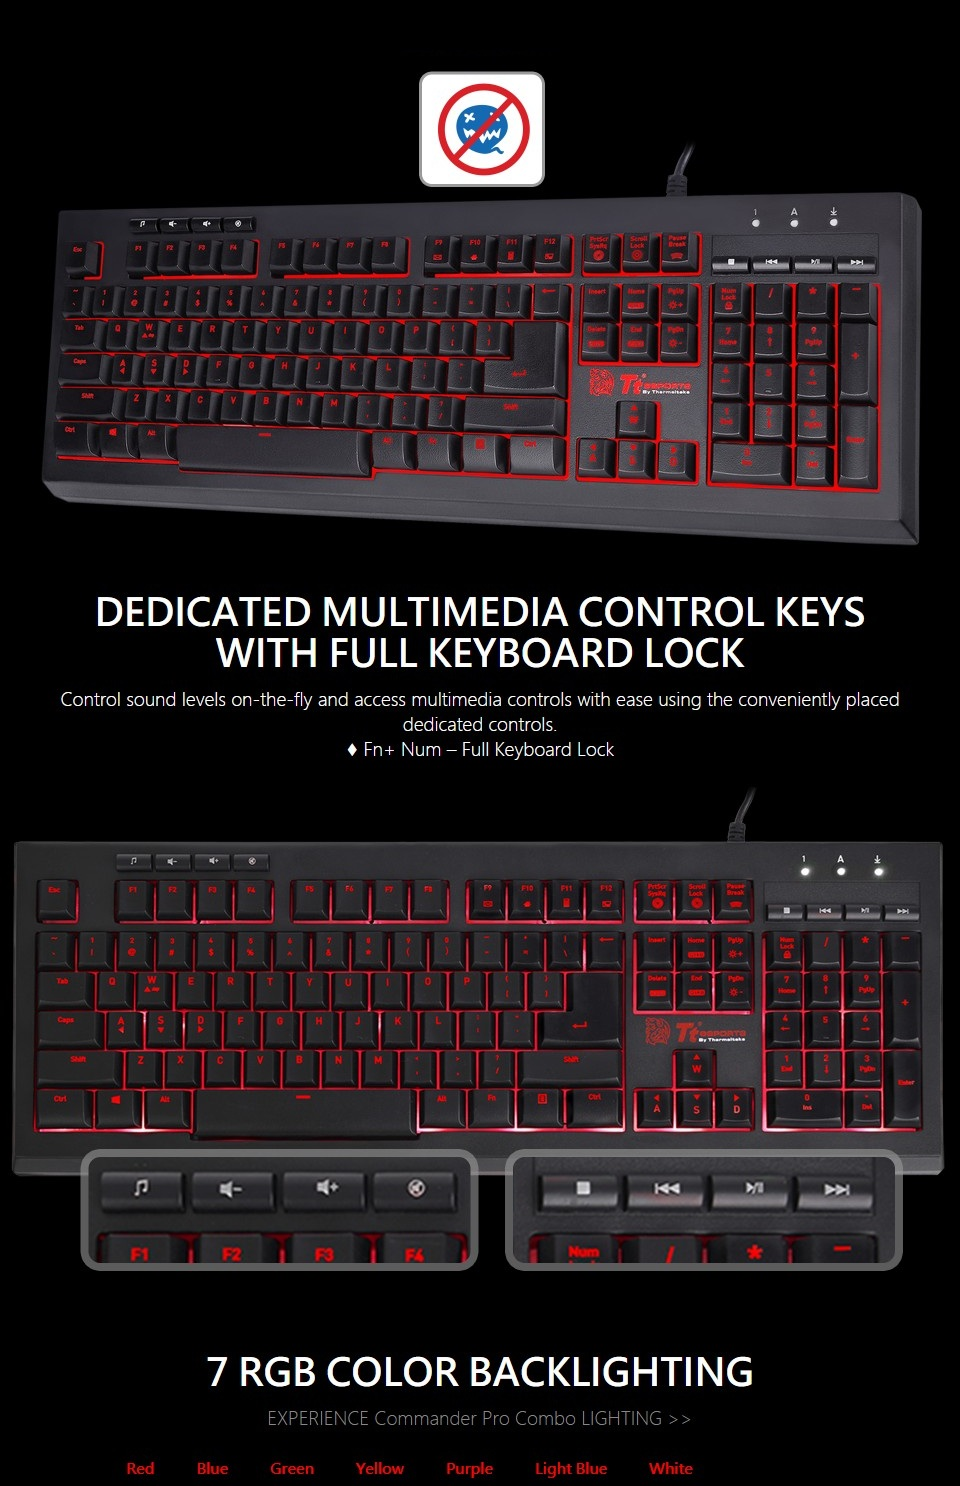 Tt eSPORTS Commander Pro Gaming Keyboard and Mouse Combo features 2